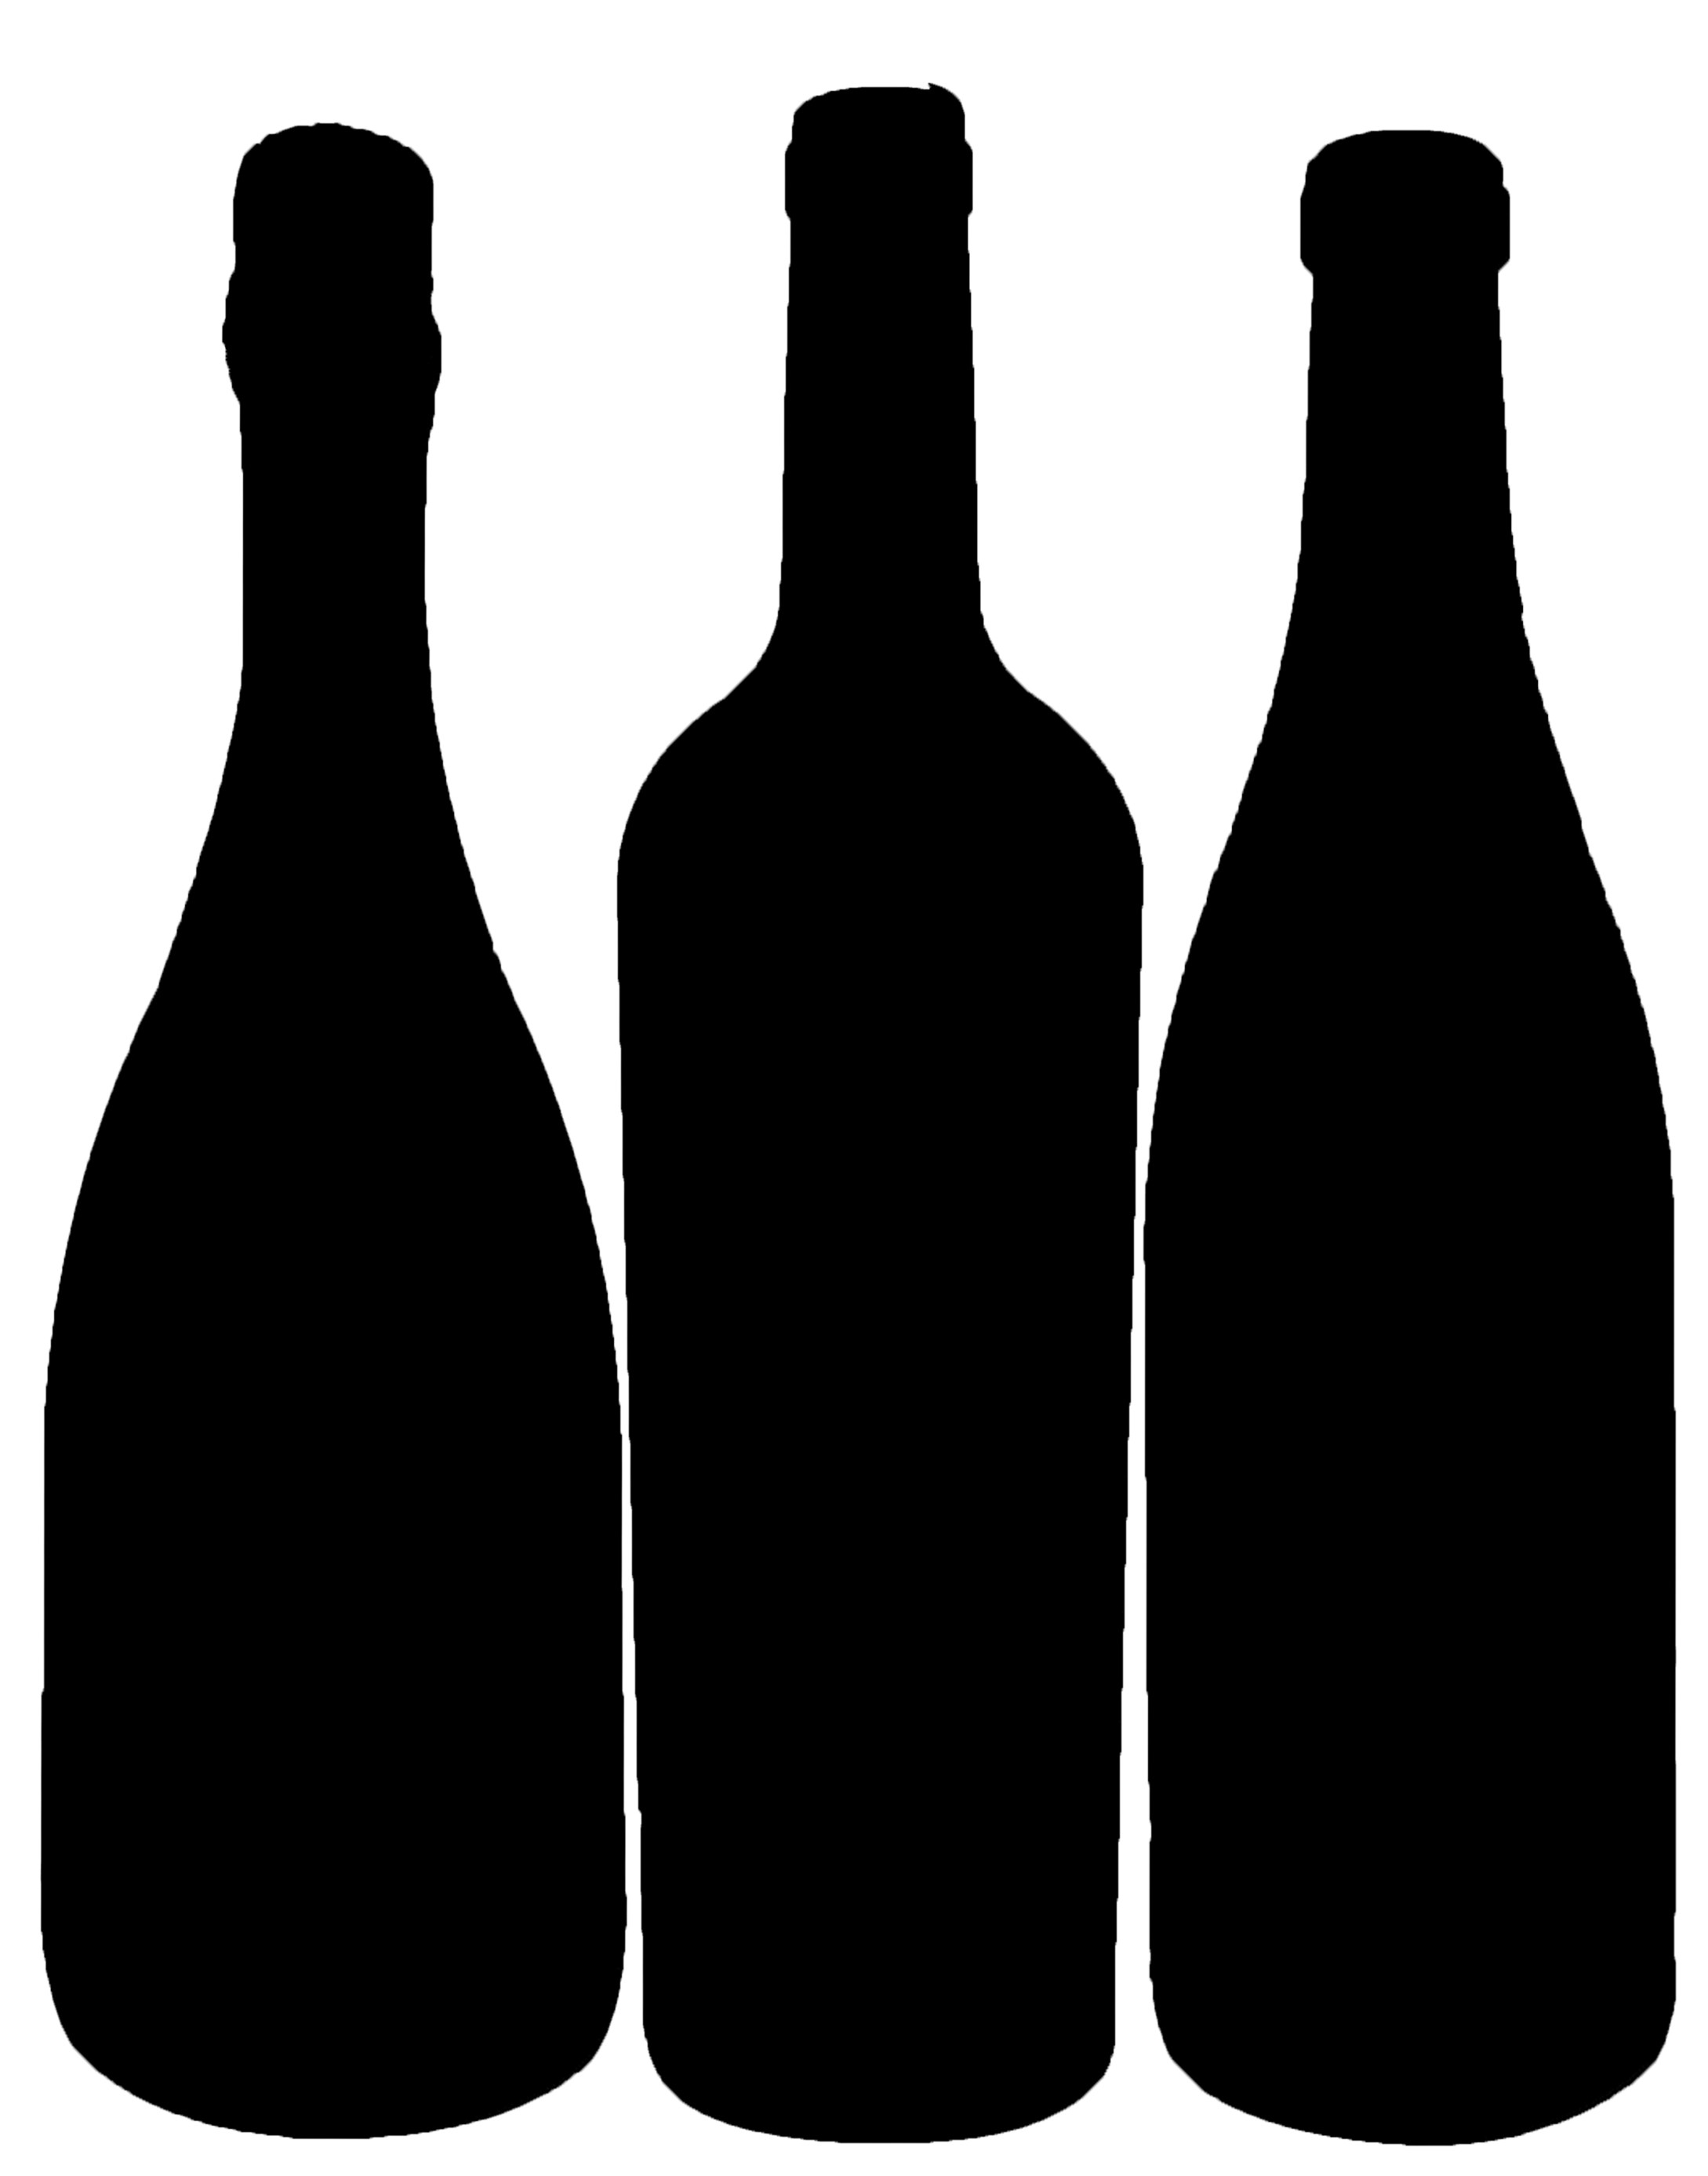 Bottle clipart silhouette Free Png Img on Need